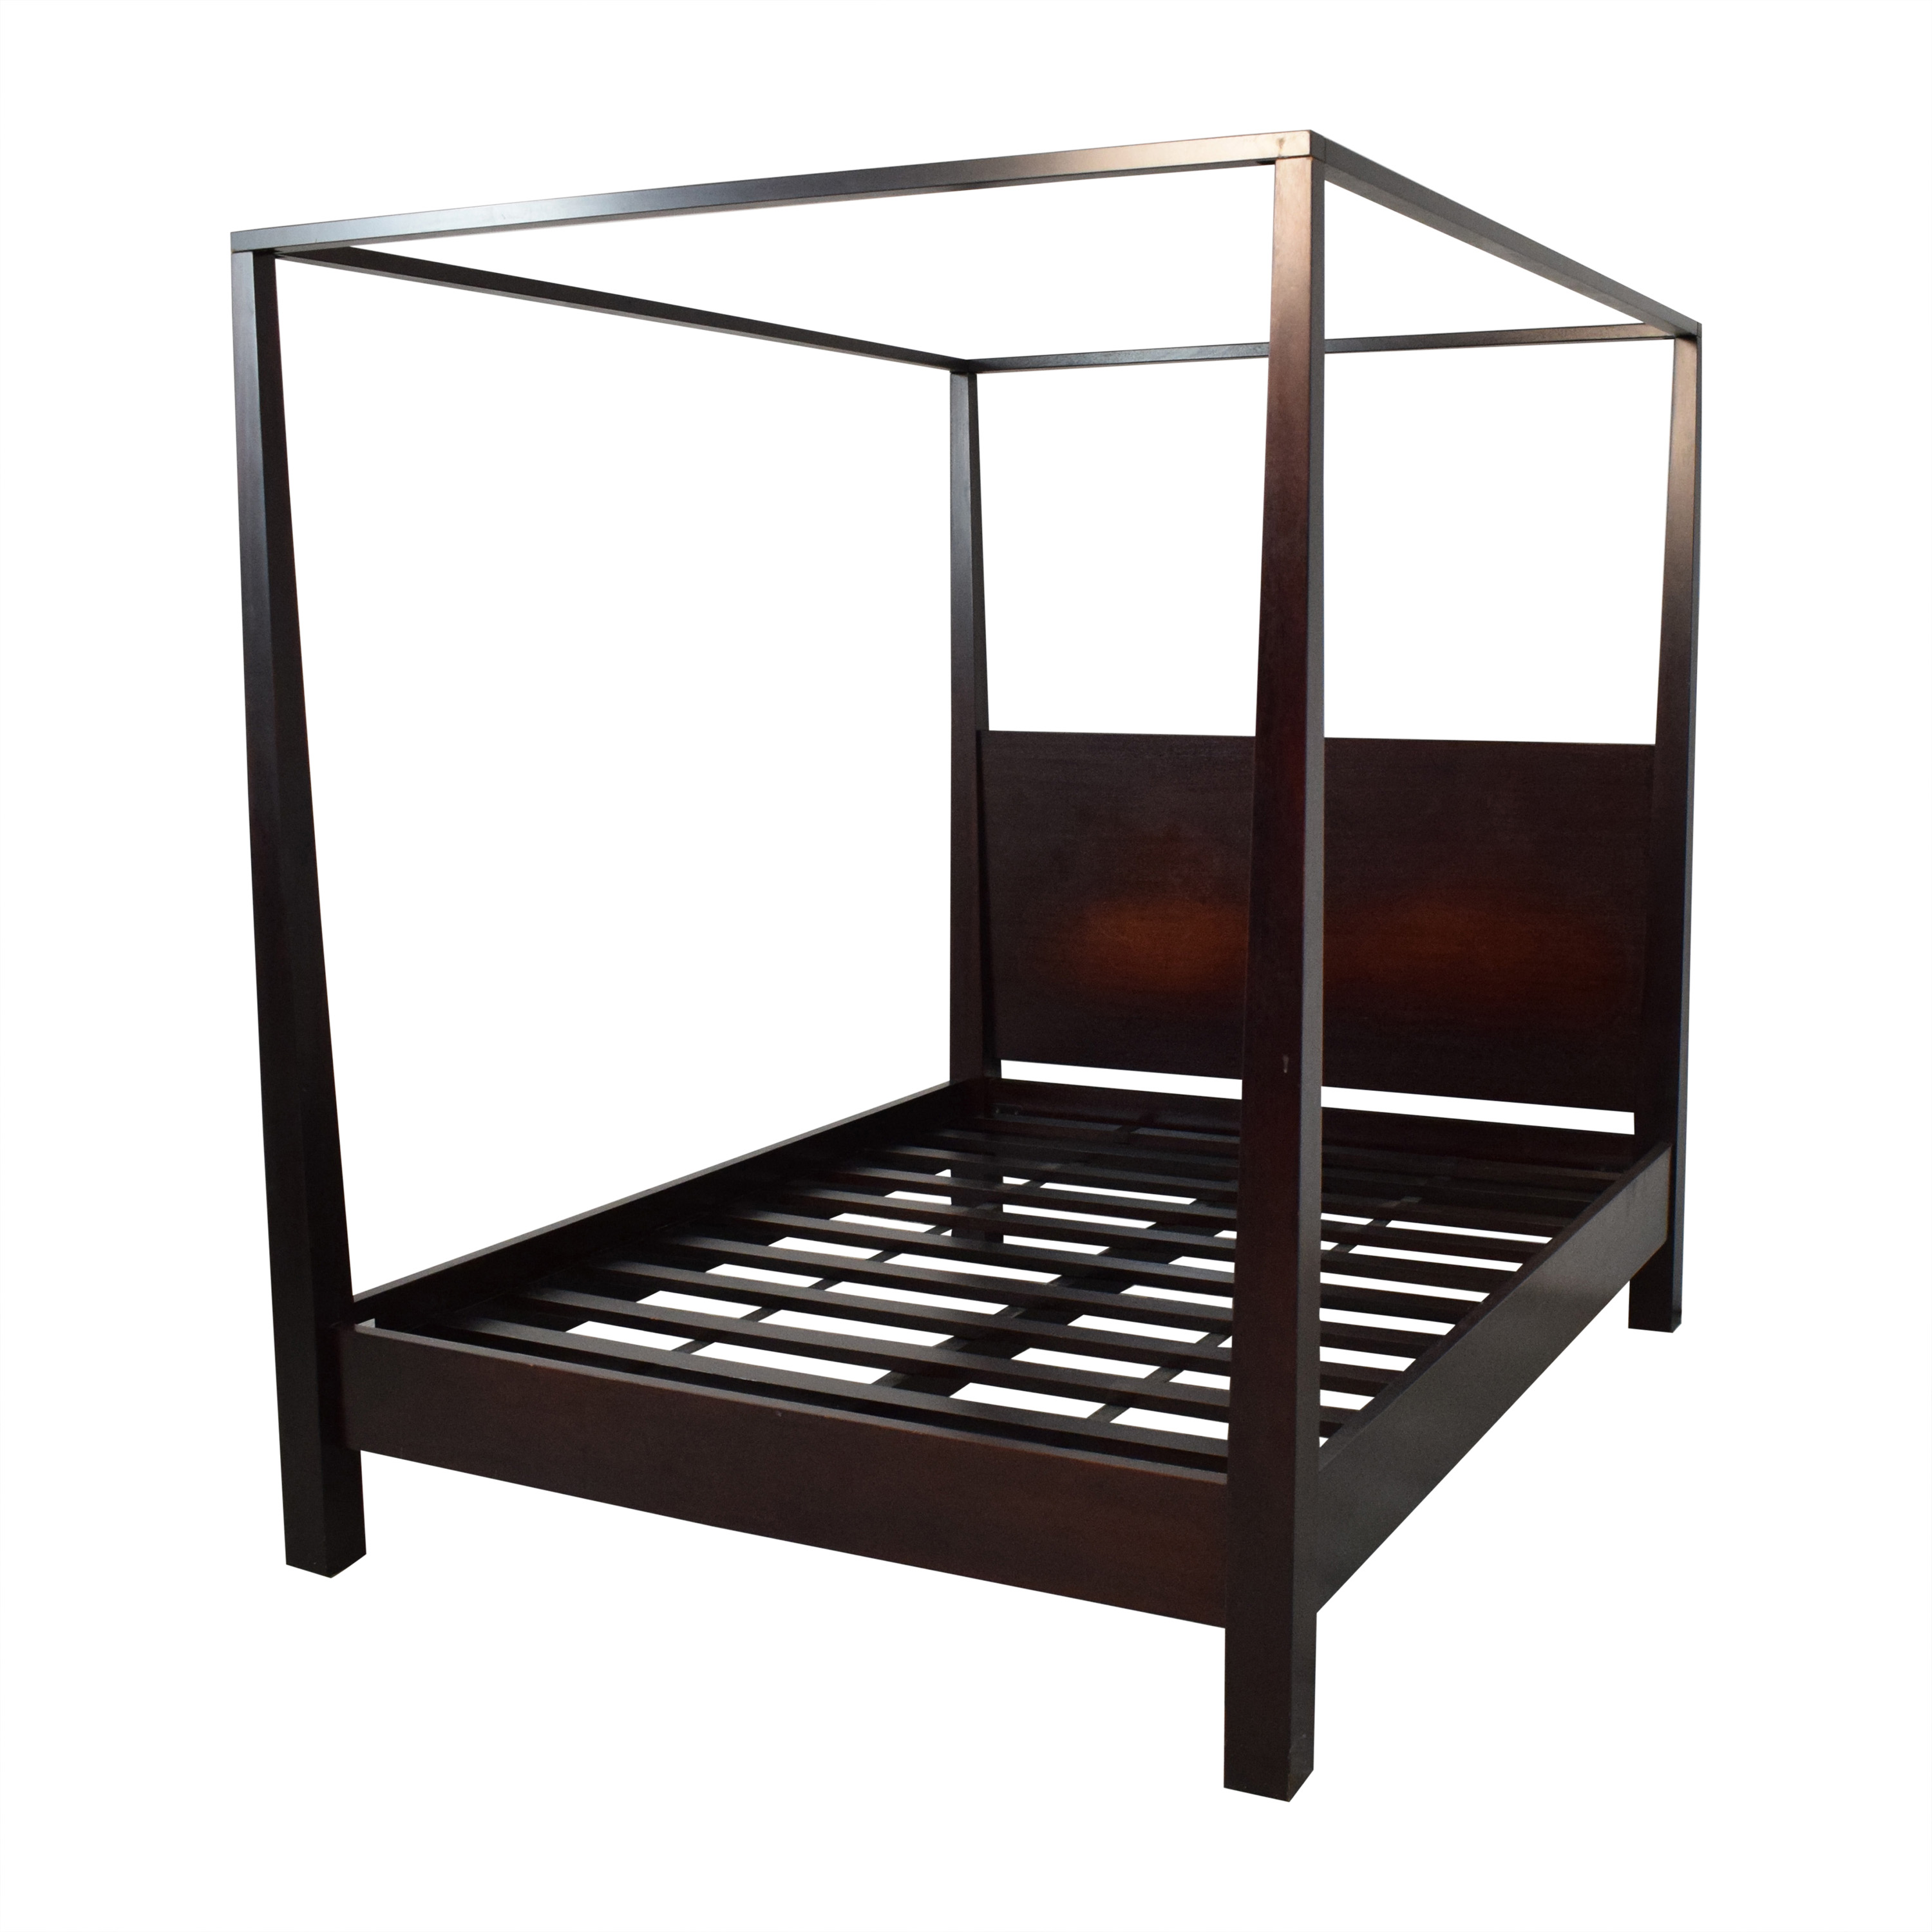 Crate & Barrel Crate & Barrel Brown Farmhouse Style Canopy Queen Bed ct